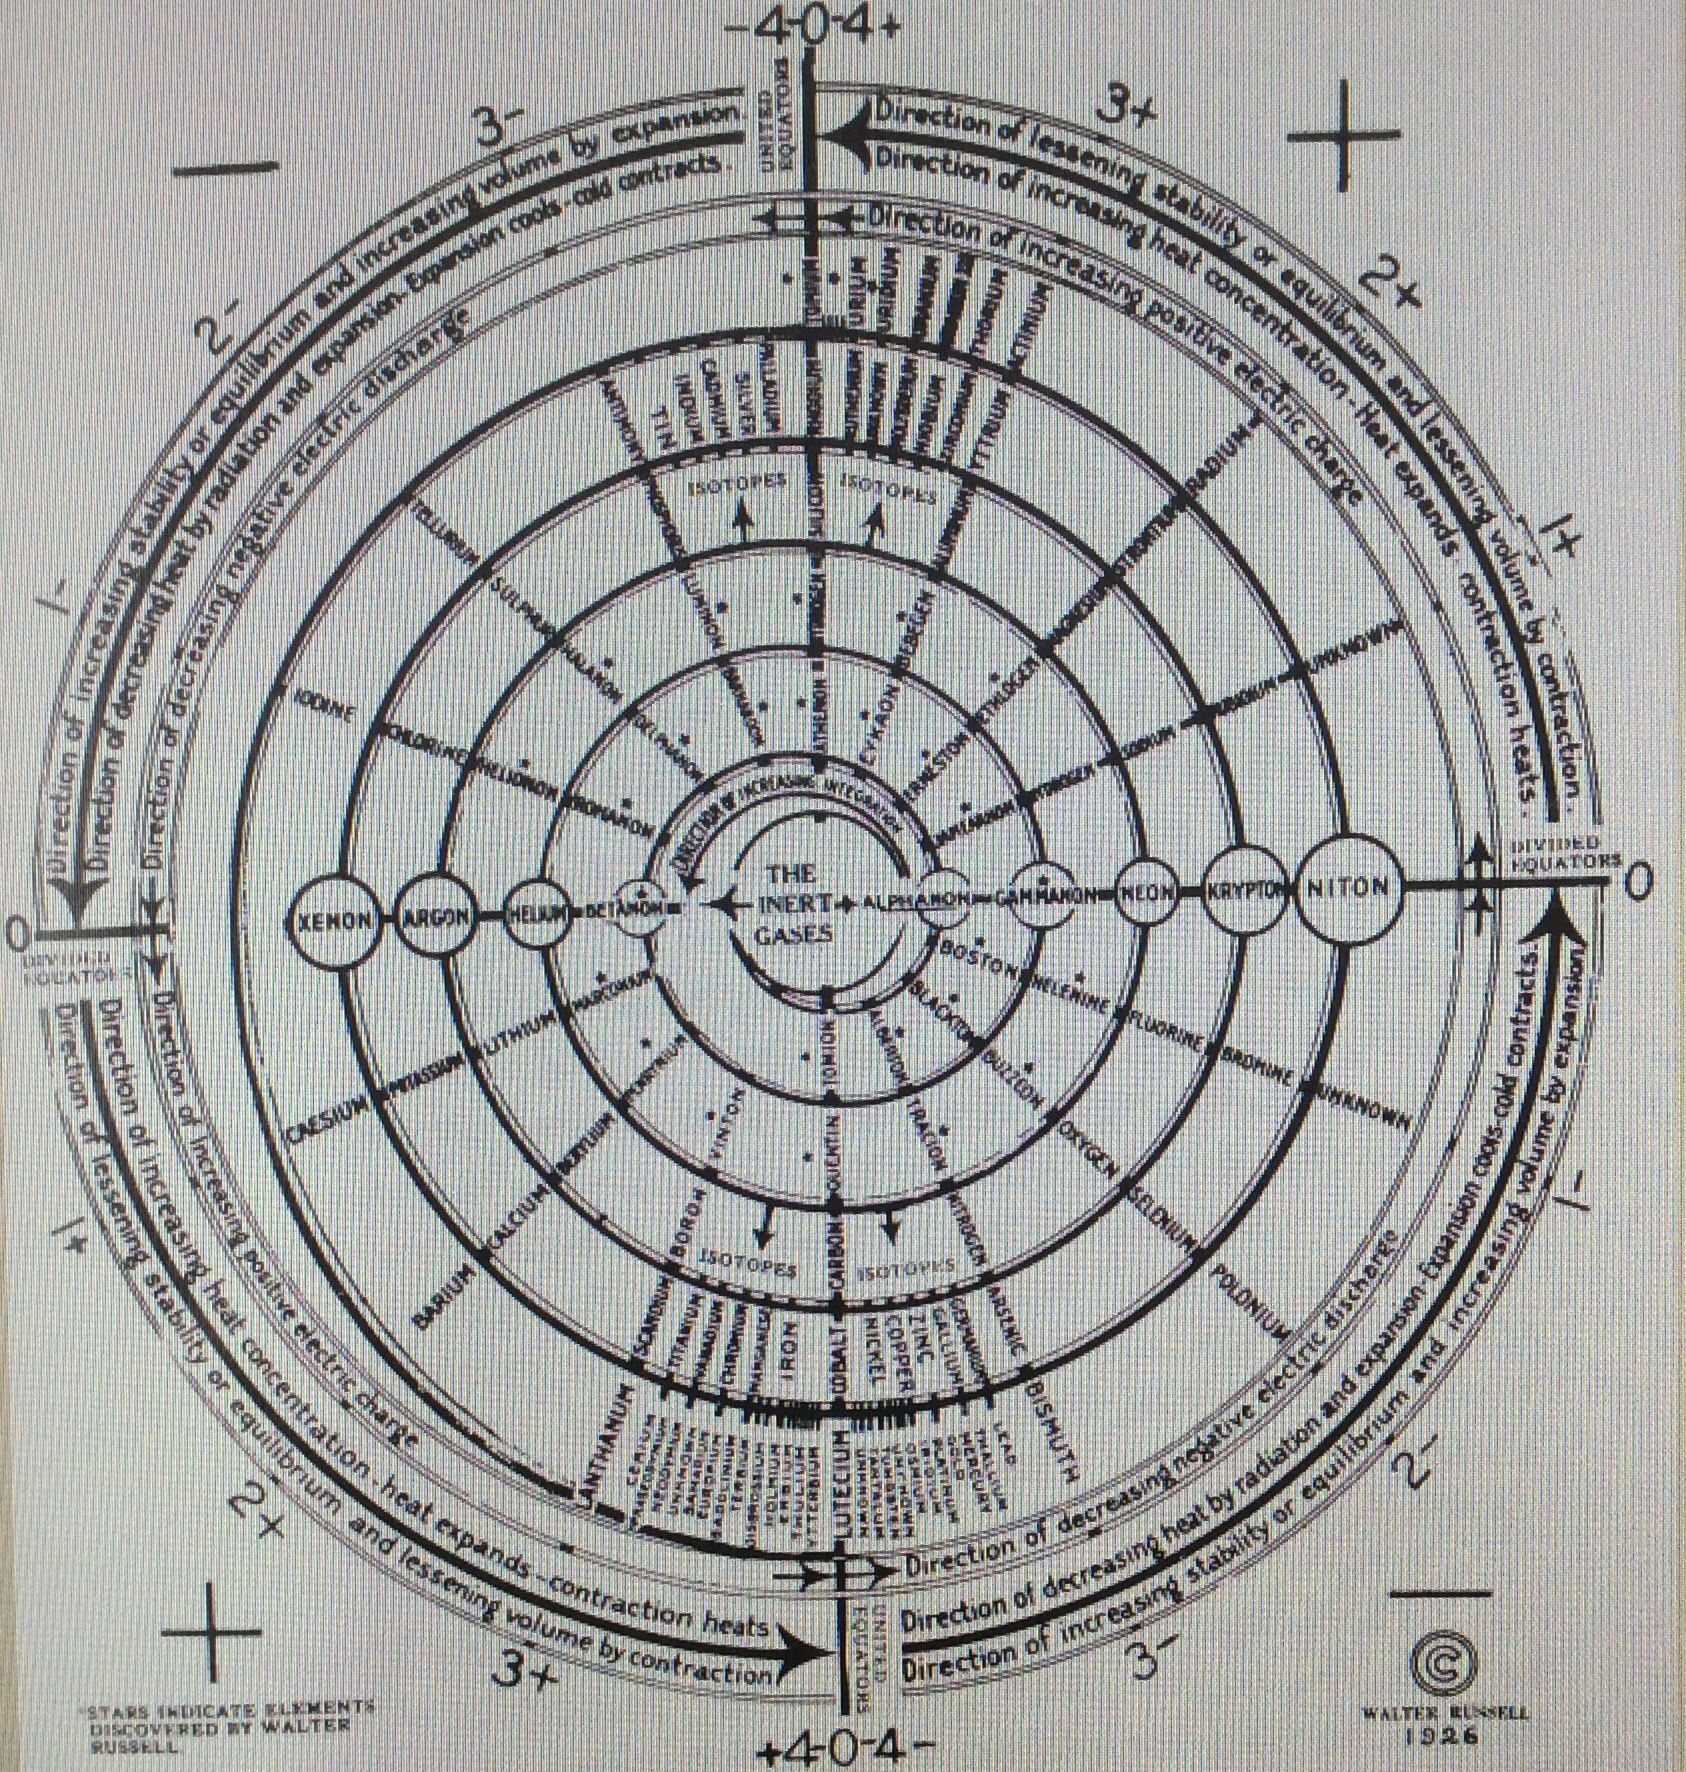 Walter russell periodic chart nerd fighters pinterest walter walter russell periodic chart gamestrikefo Images